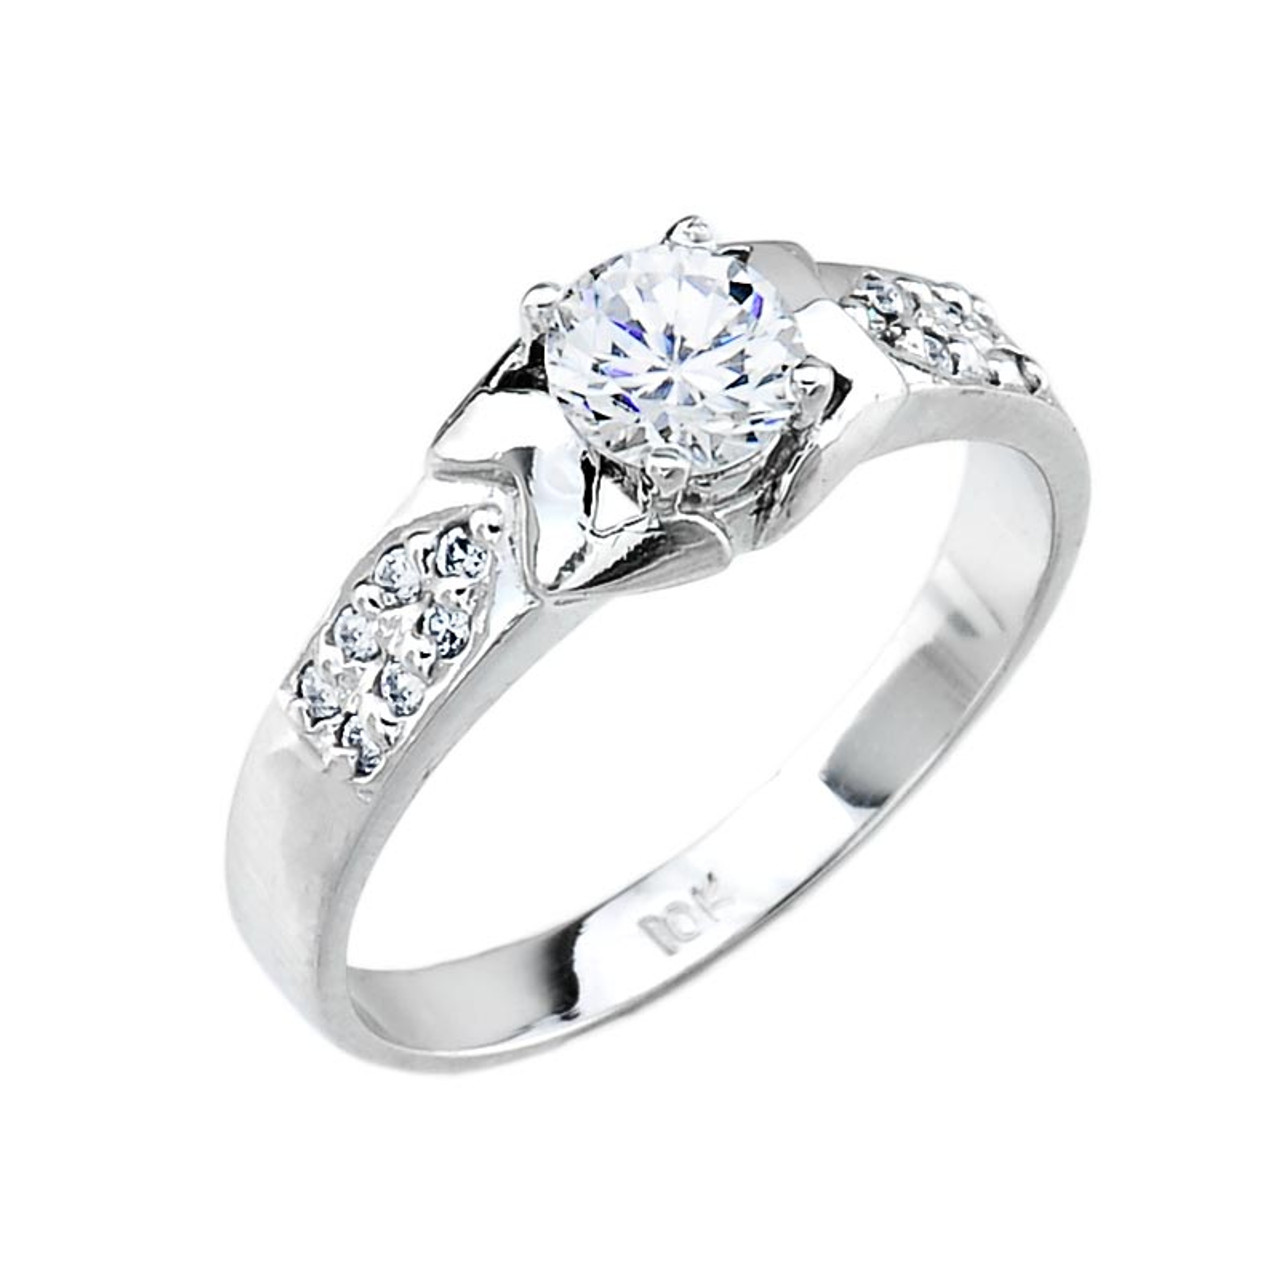 Engagement Ring Silver Cz Engagement Ring White Gold Cz Engagement Ring Cz Solitaire Engagement Ring Round Cz Engagement Ring Cz Engagement Ring